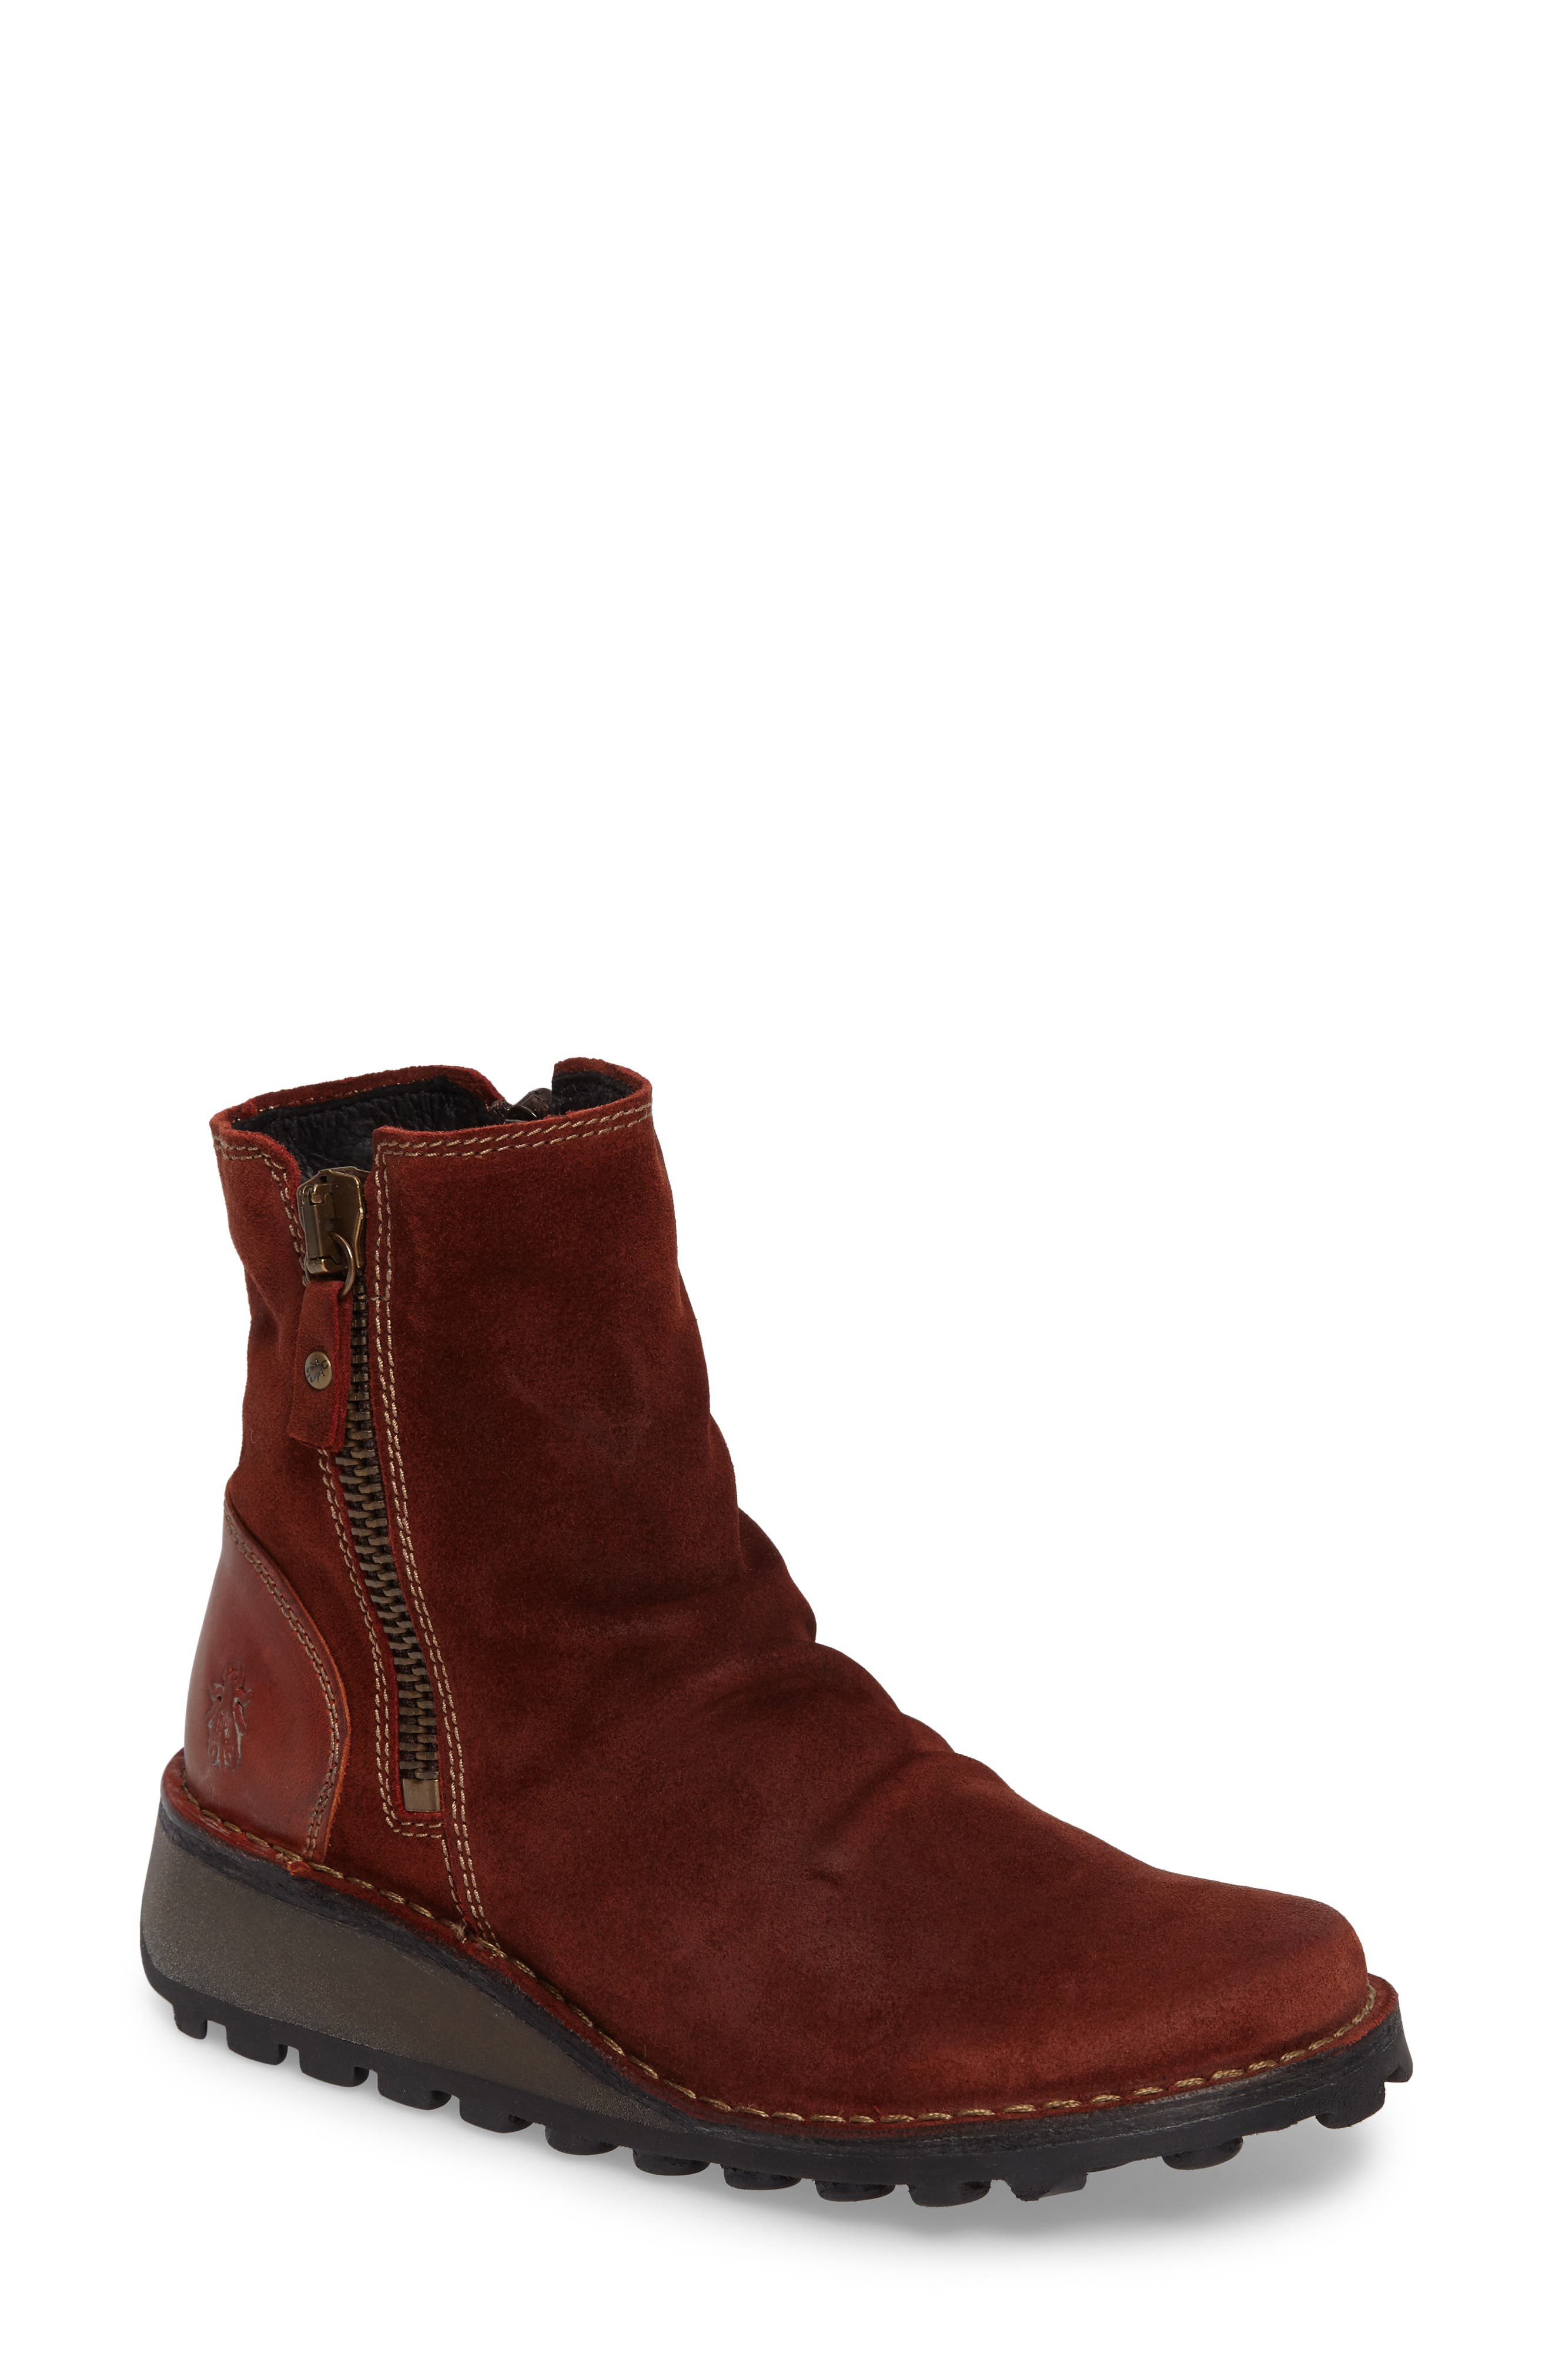 Main Image - Fly London Mong Boot (Women)